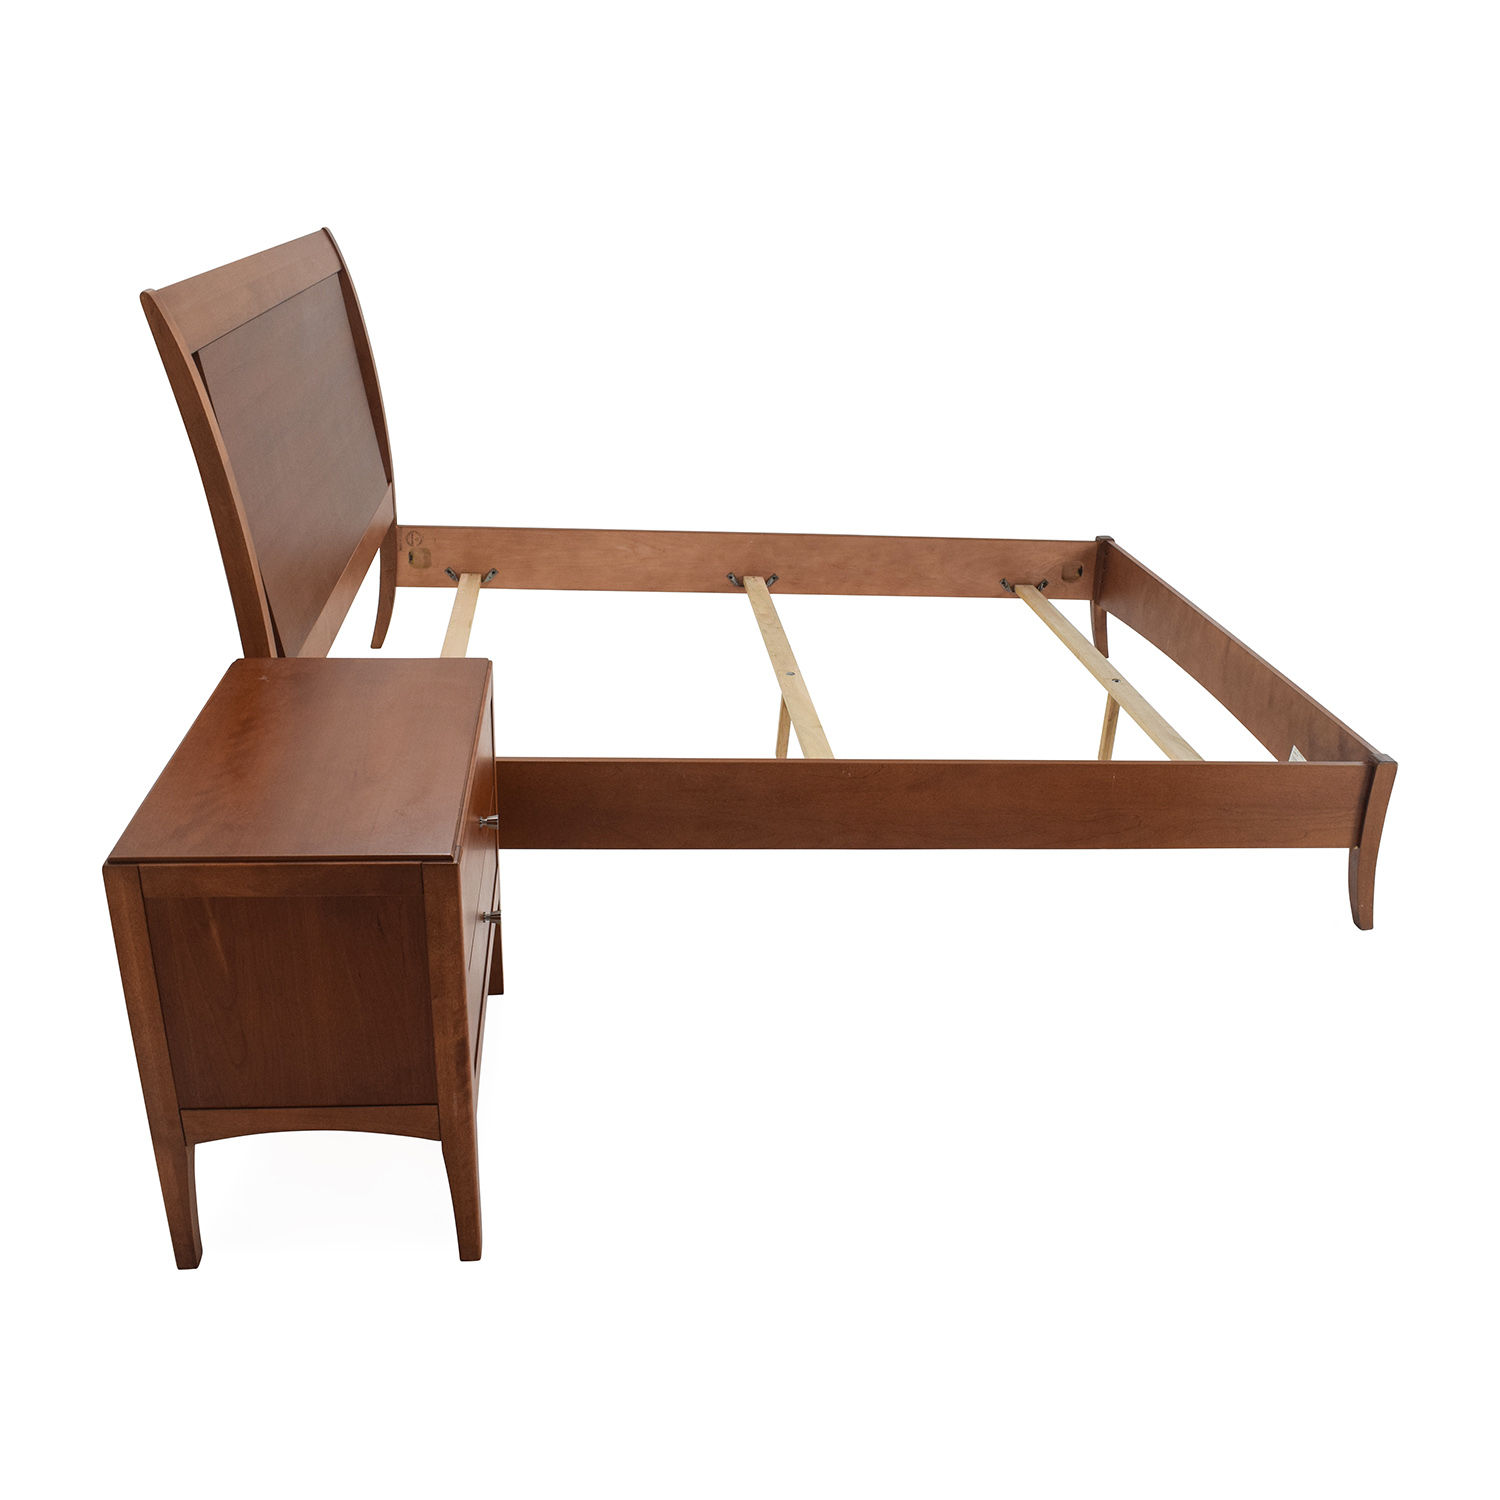 macys macys bed frame and matching side table for